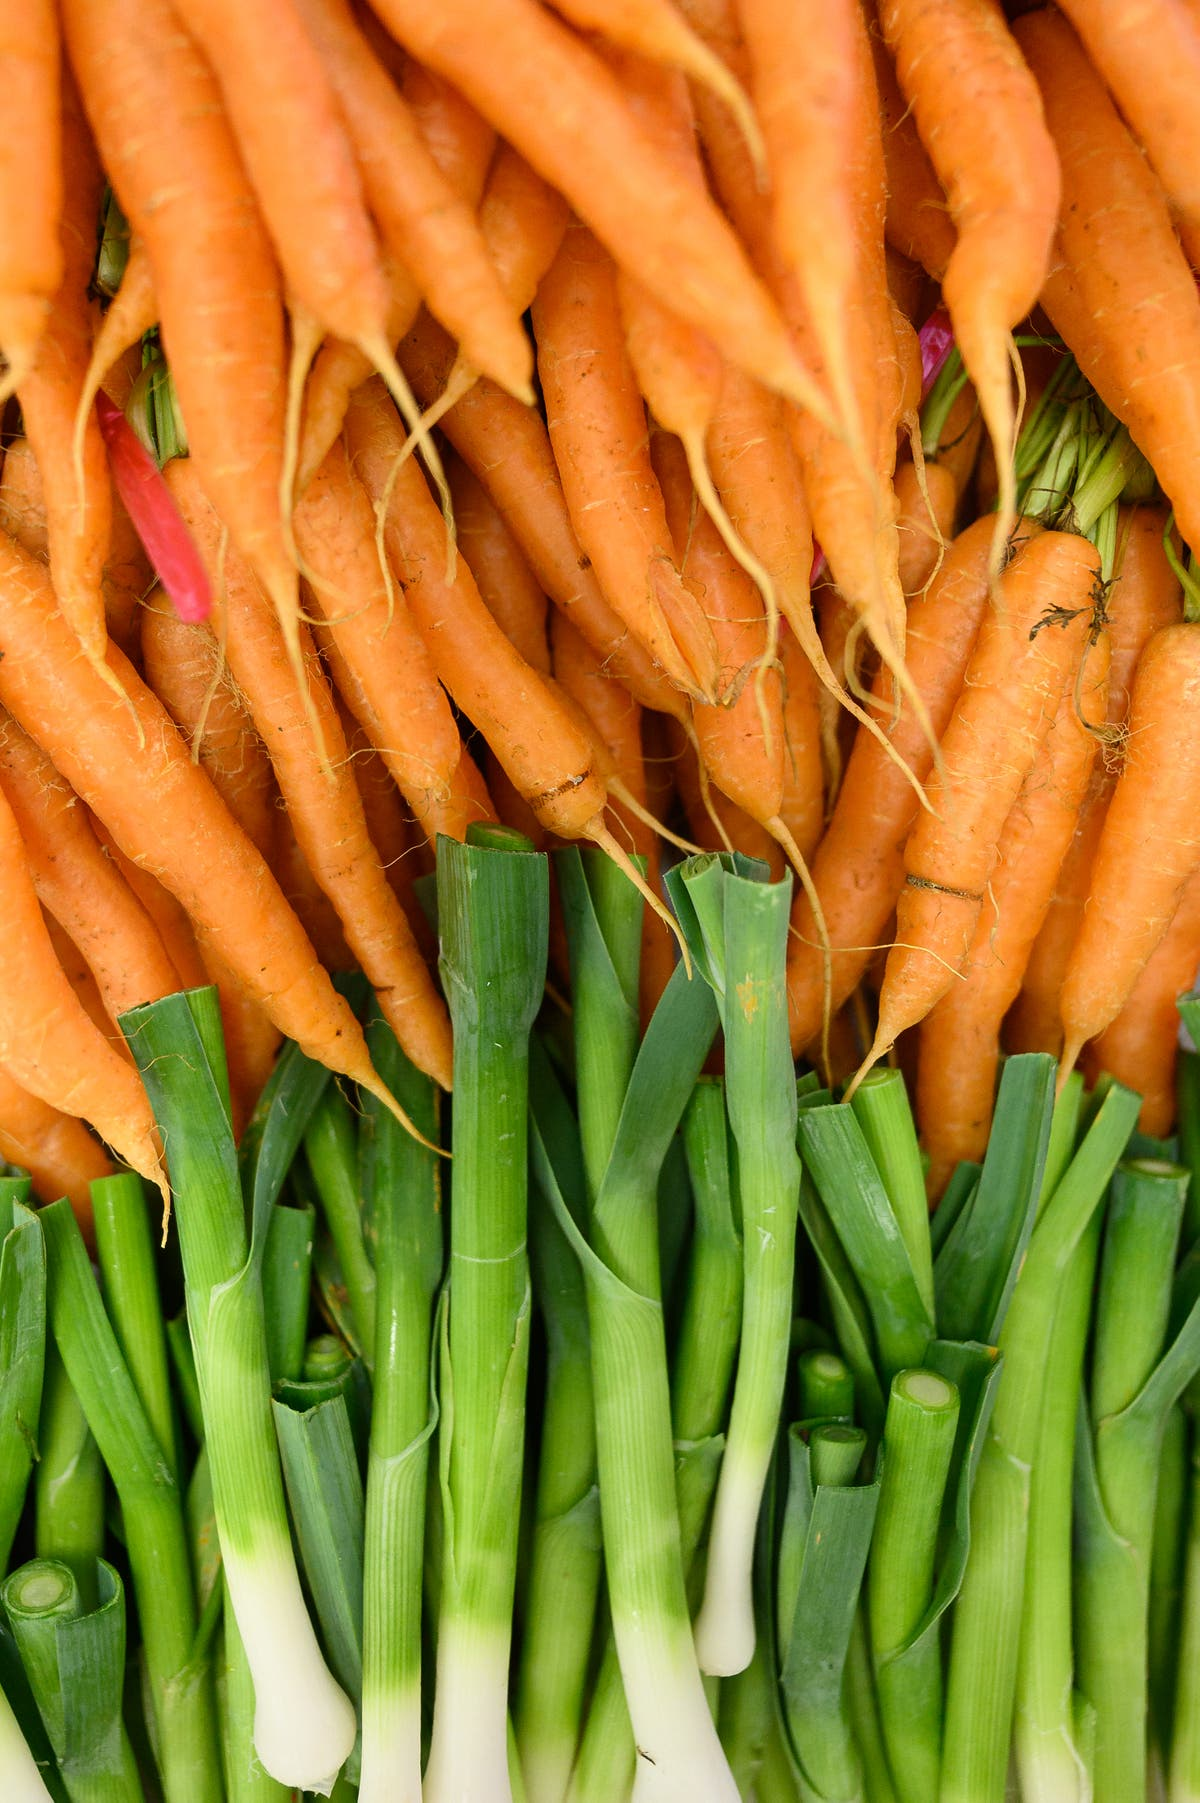 Carrots don't help you see in the dark: Expert debunks famous food myths